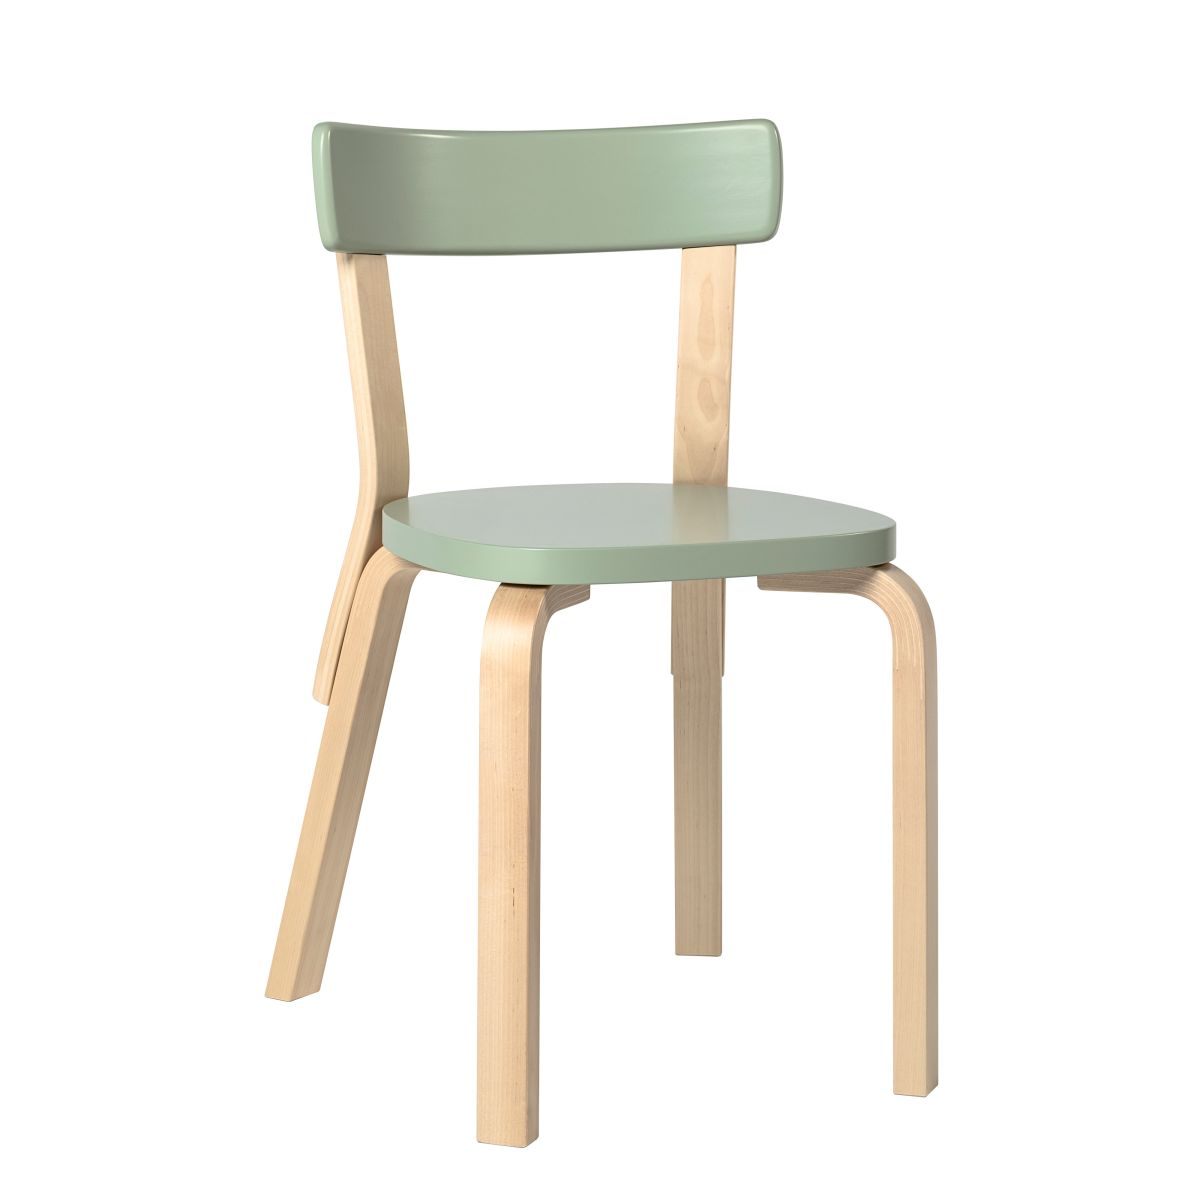 Chair 69 green lacquer seat